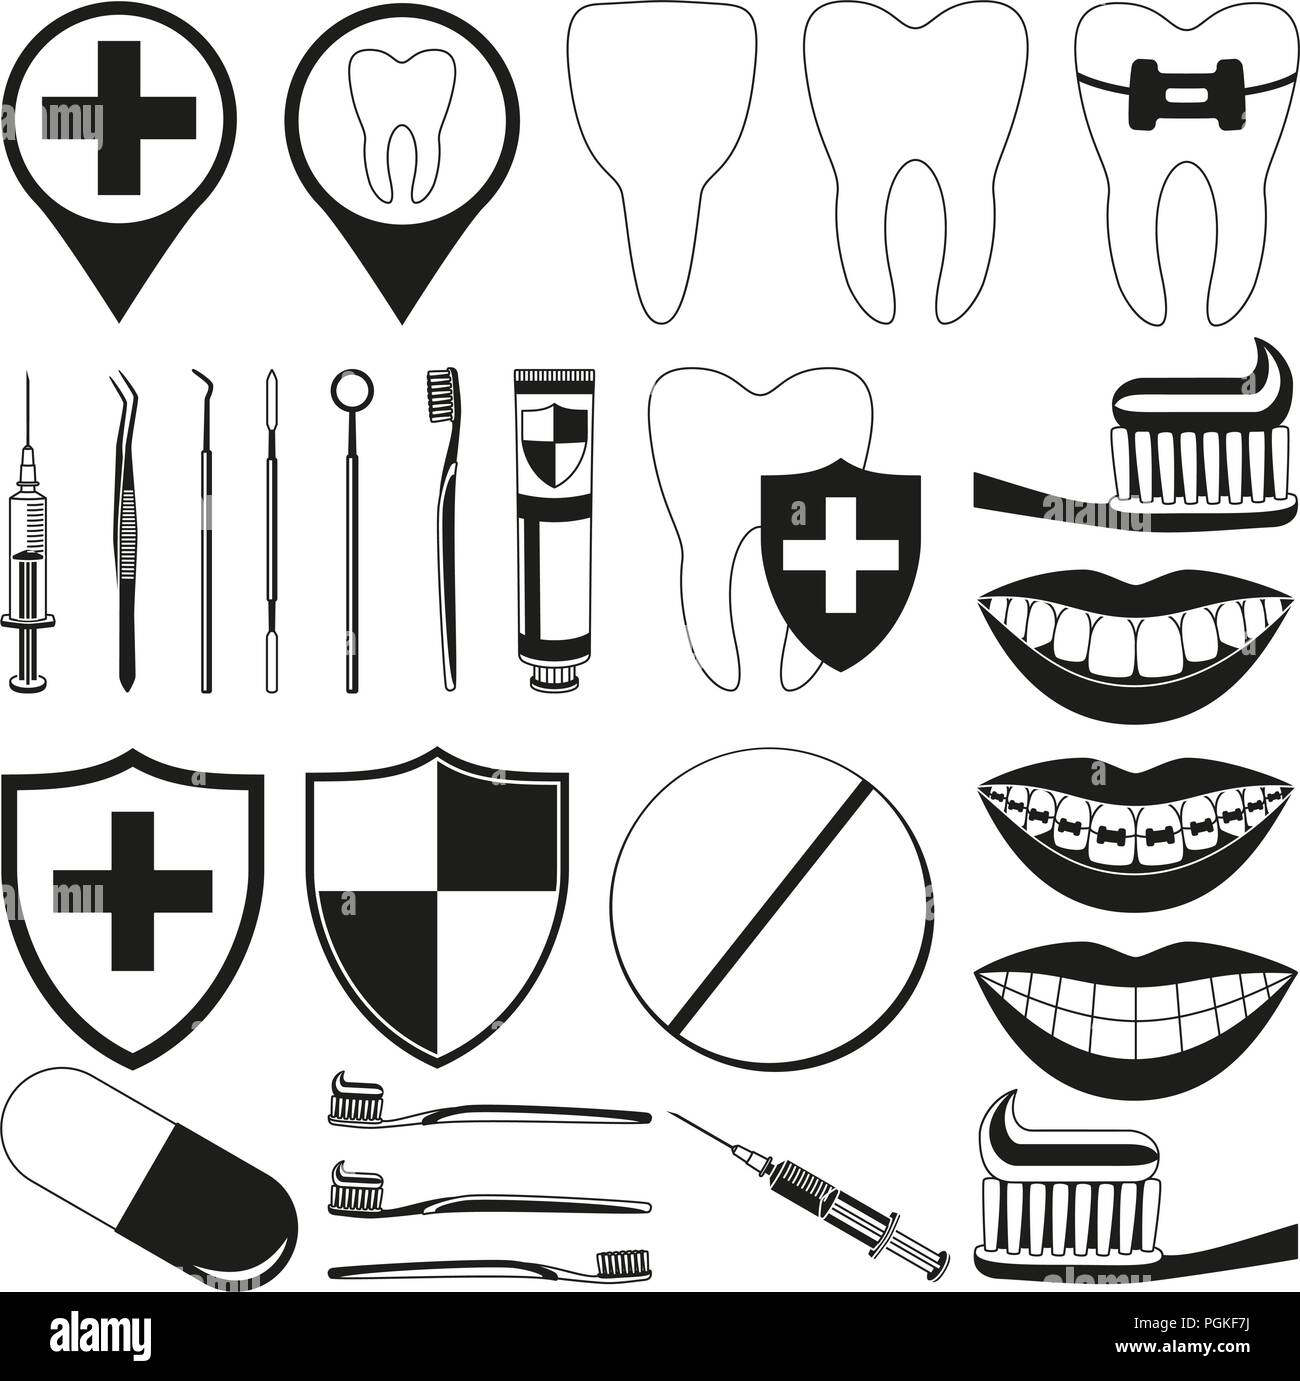 Black and white dental 28 silhouette elements set - Stock Vector